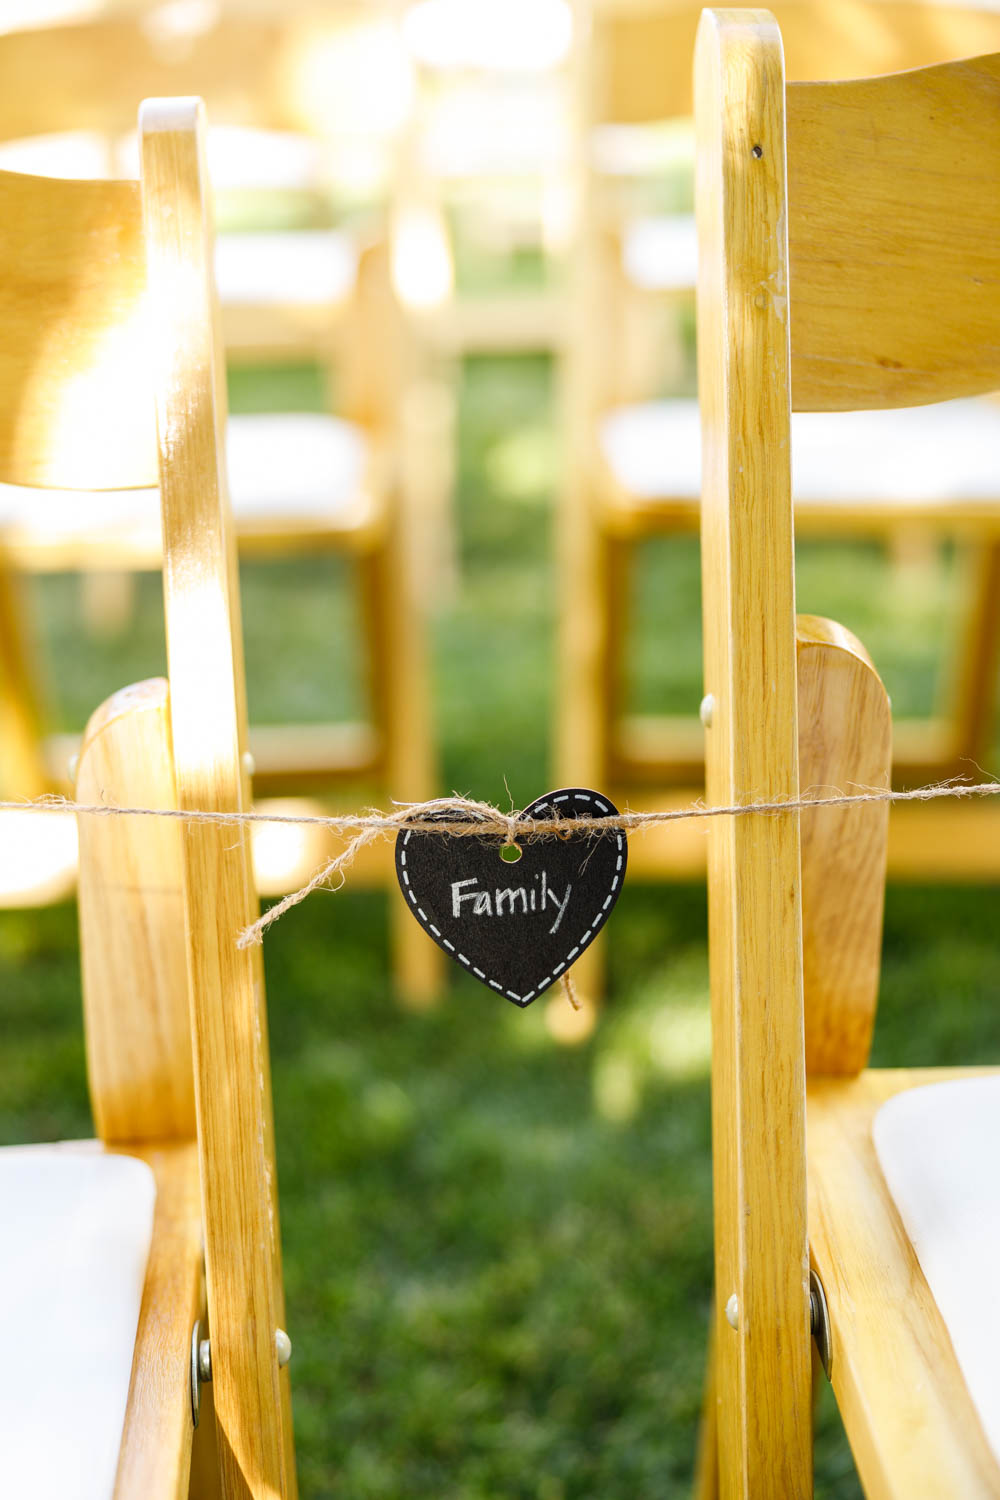 Seating reserved for family